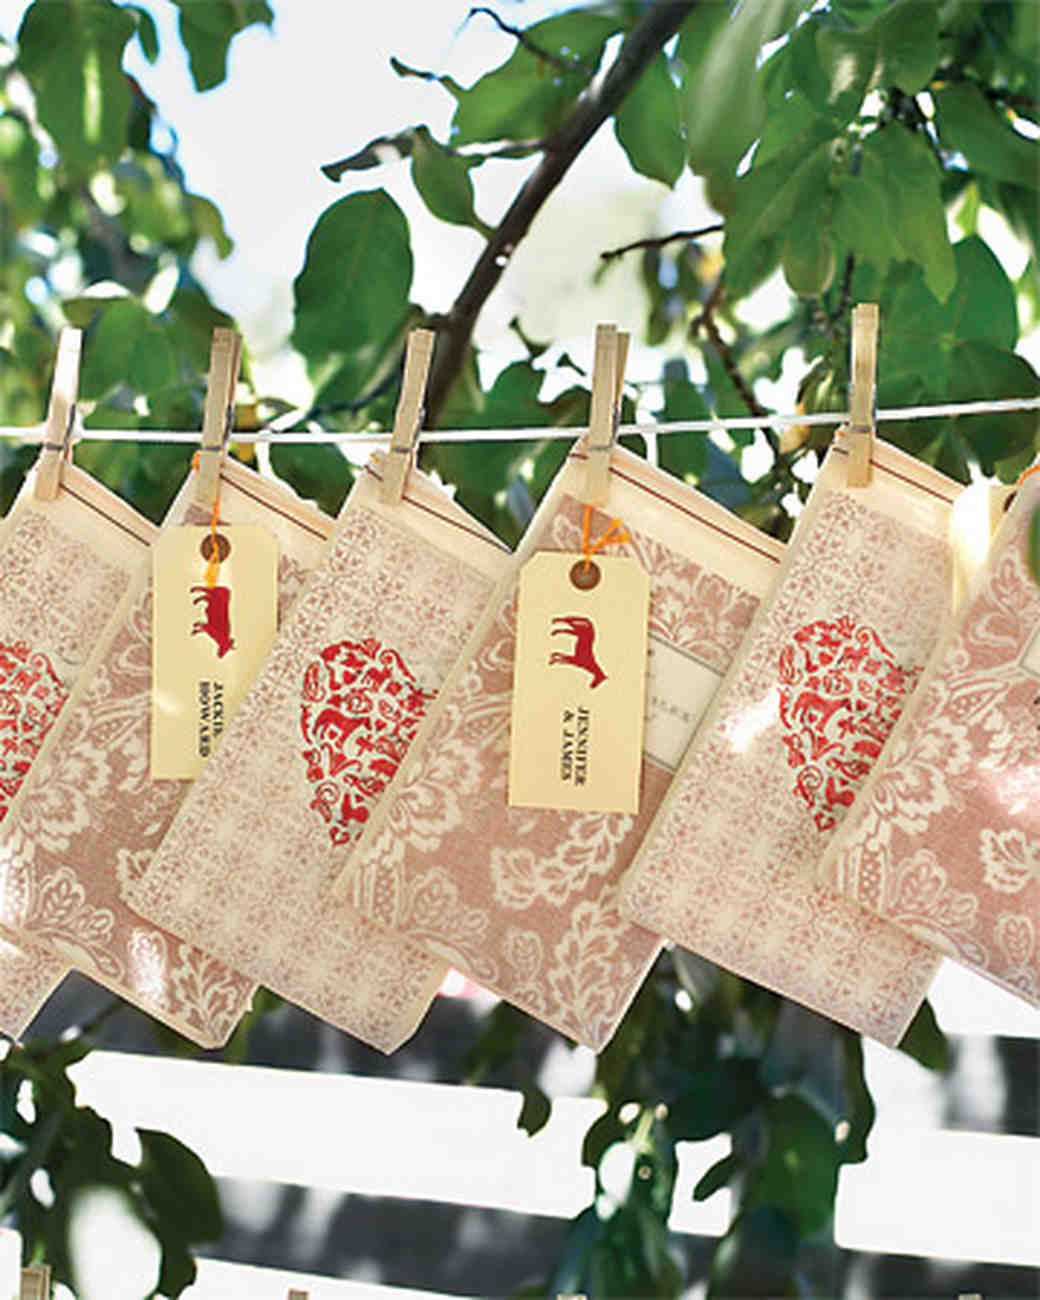 Clothesline with Stamped Gift Bags